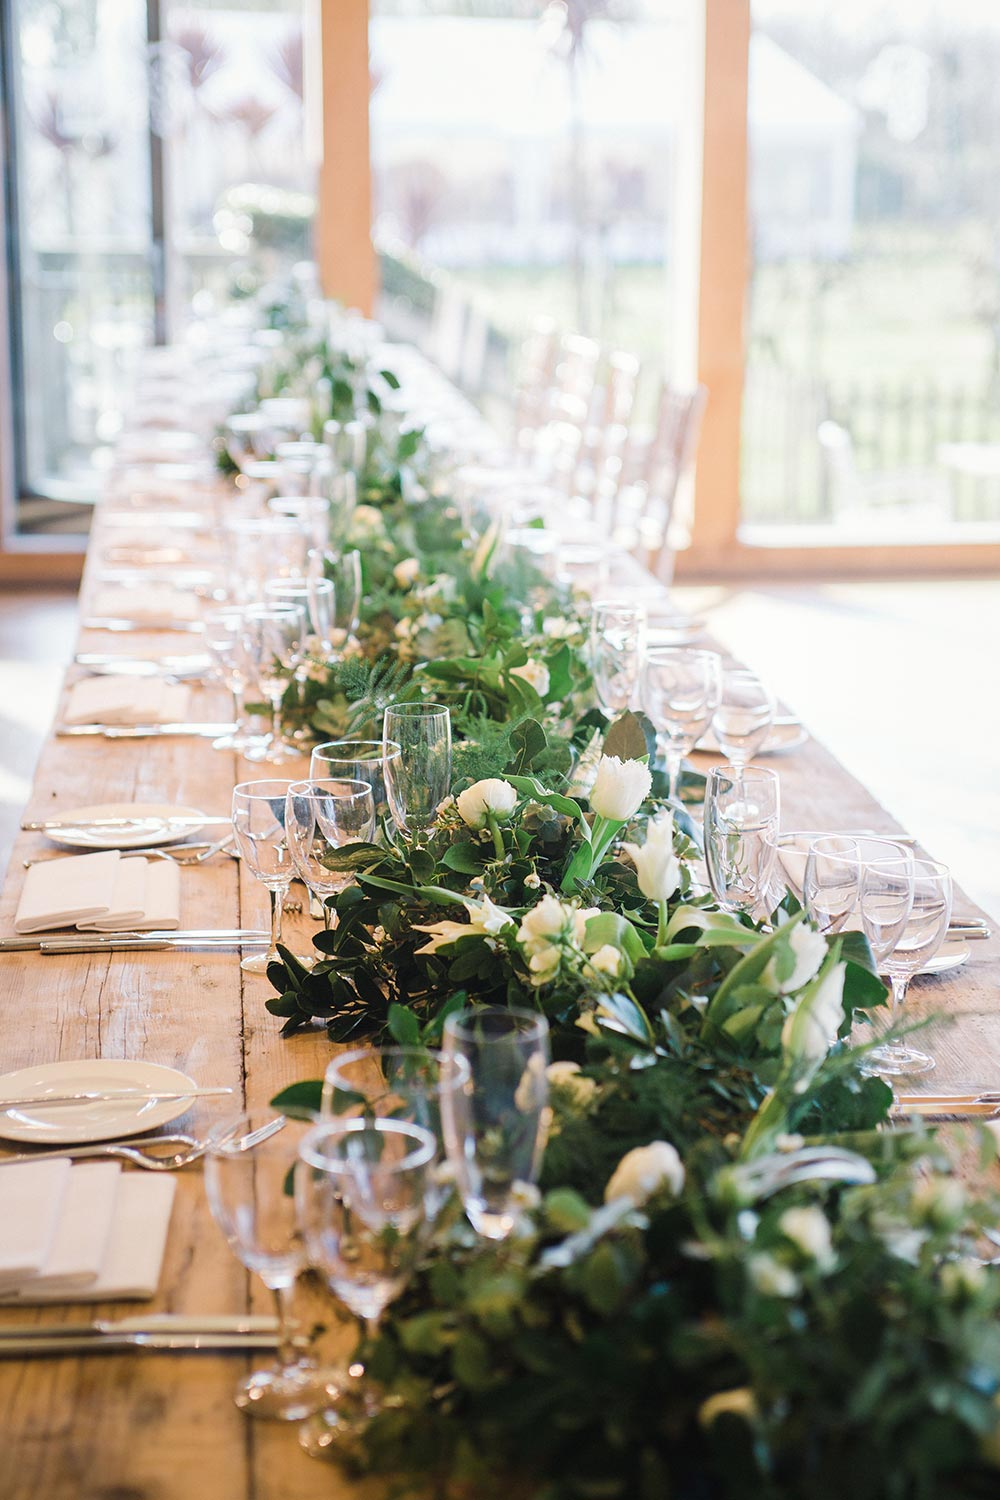 1-wilde-thyme-wedding-florals-la-mare-vineyards-wedding-banquet-table-garland.jpg